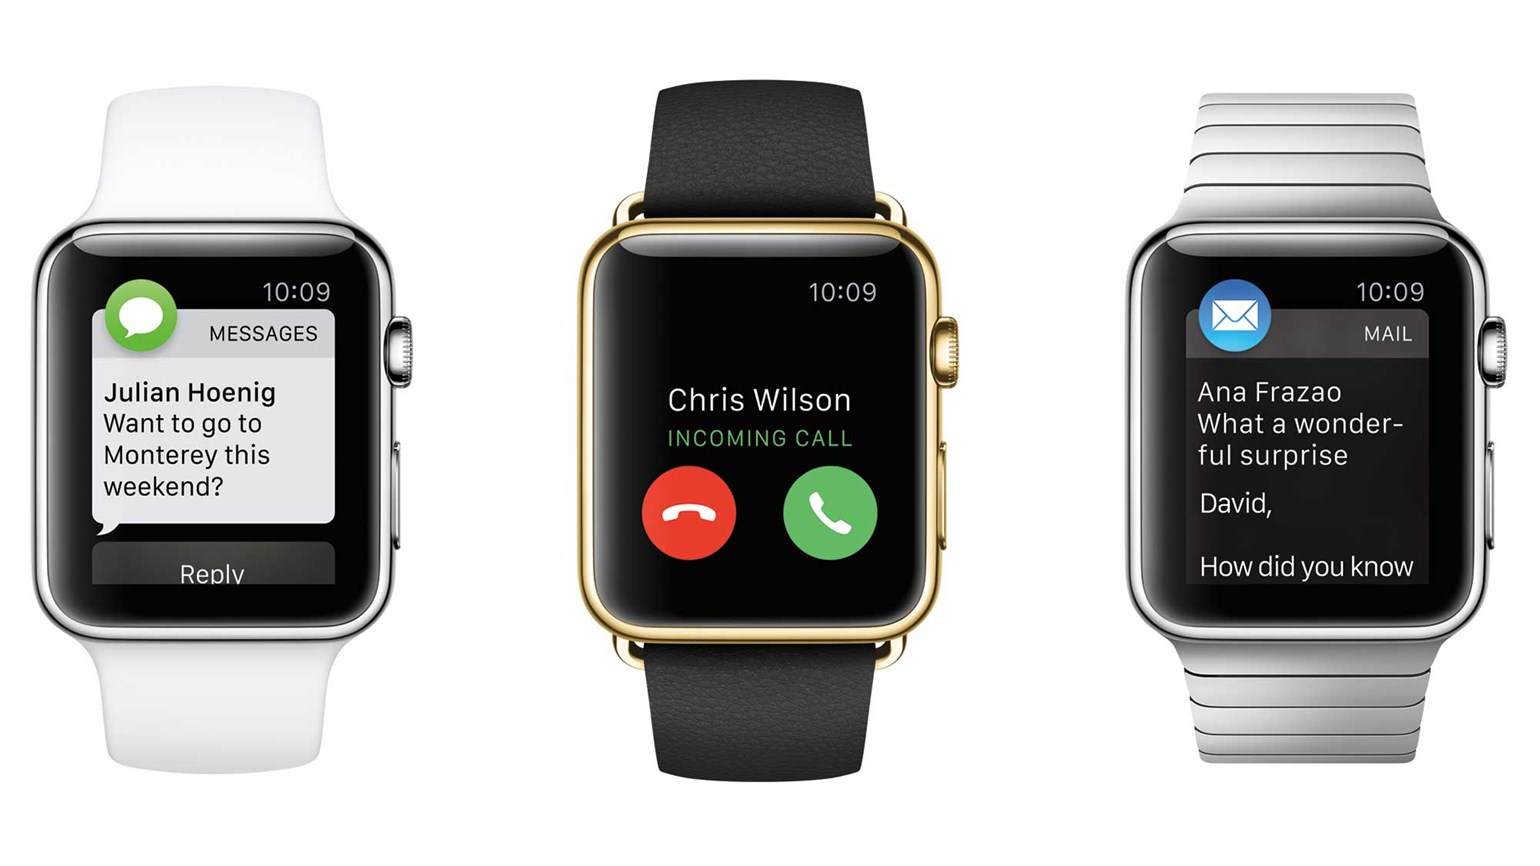 Analysts examine Apple Watch's long-term industry impact